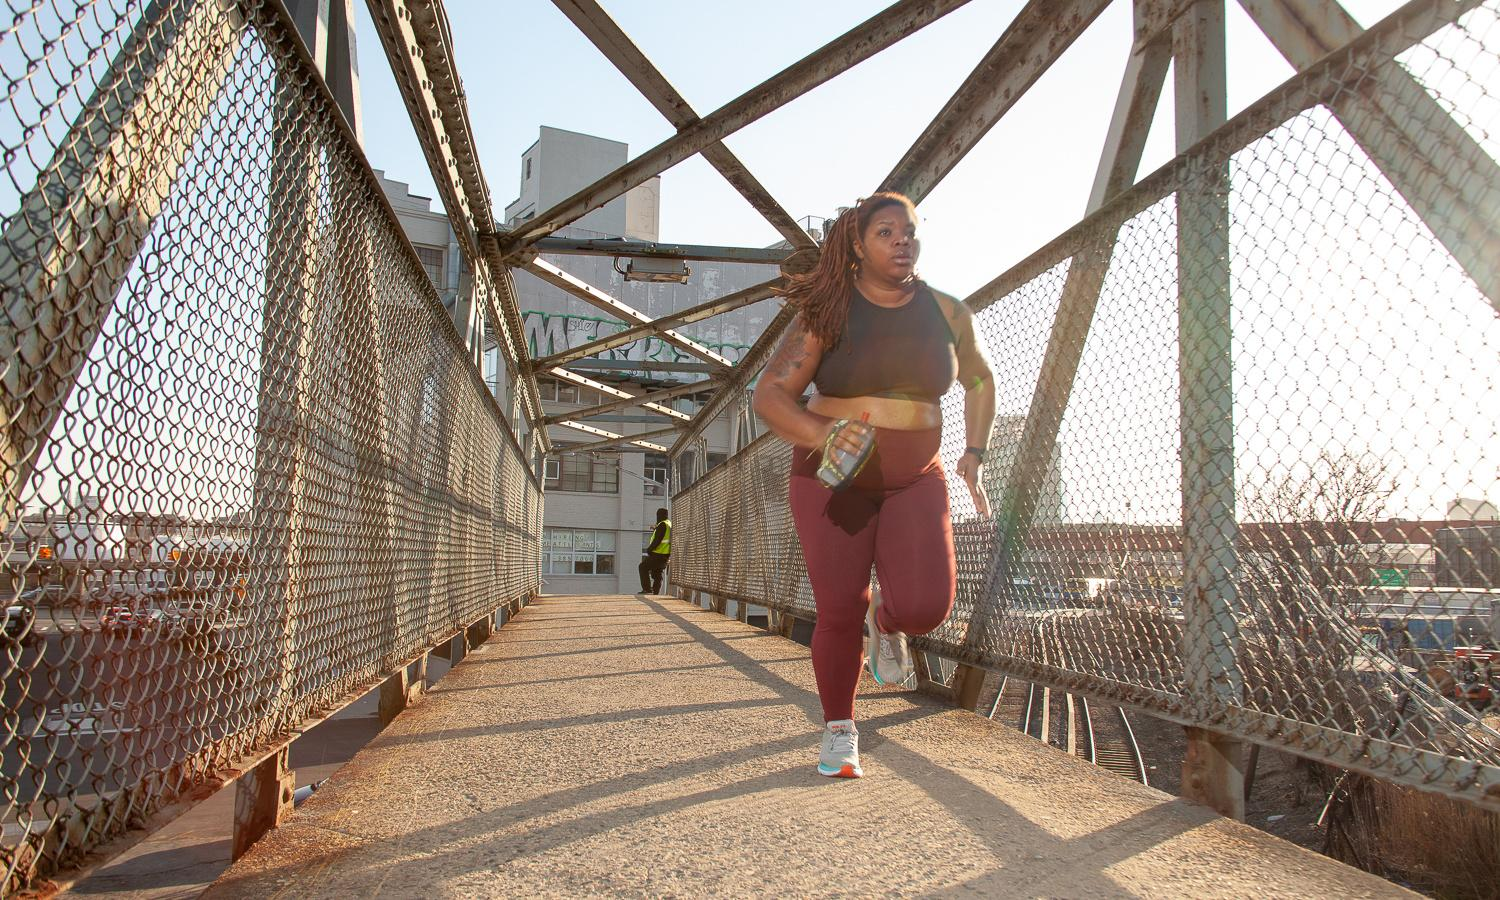 Insults, projectiles, well-intentioned fat-shaming: the perils of being a plus-size runner